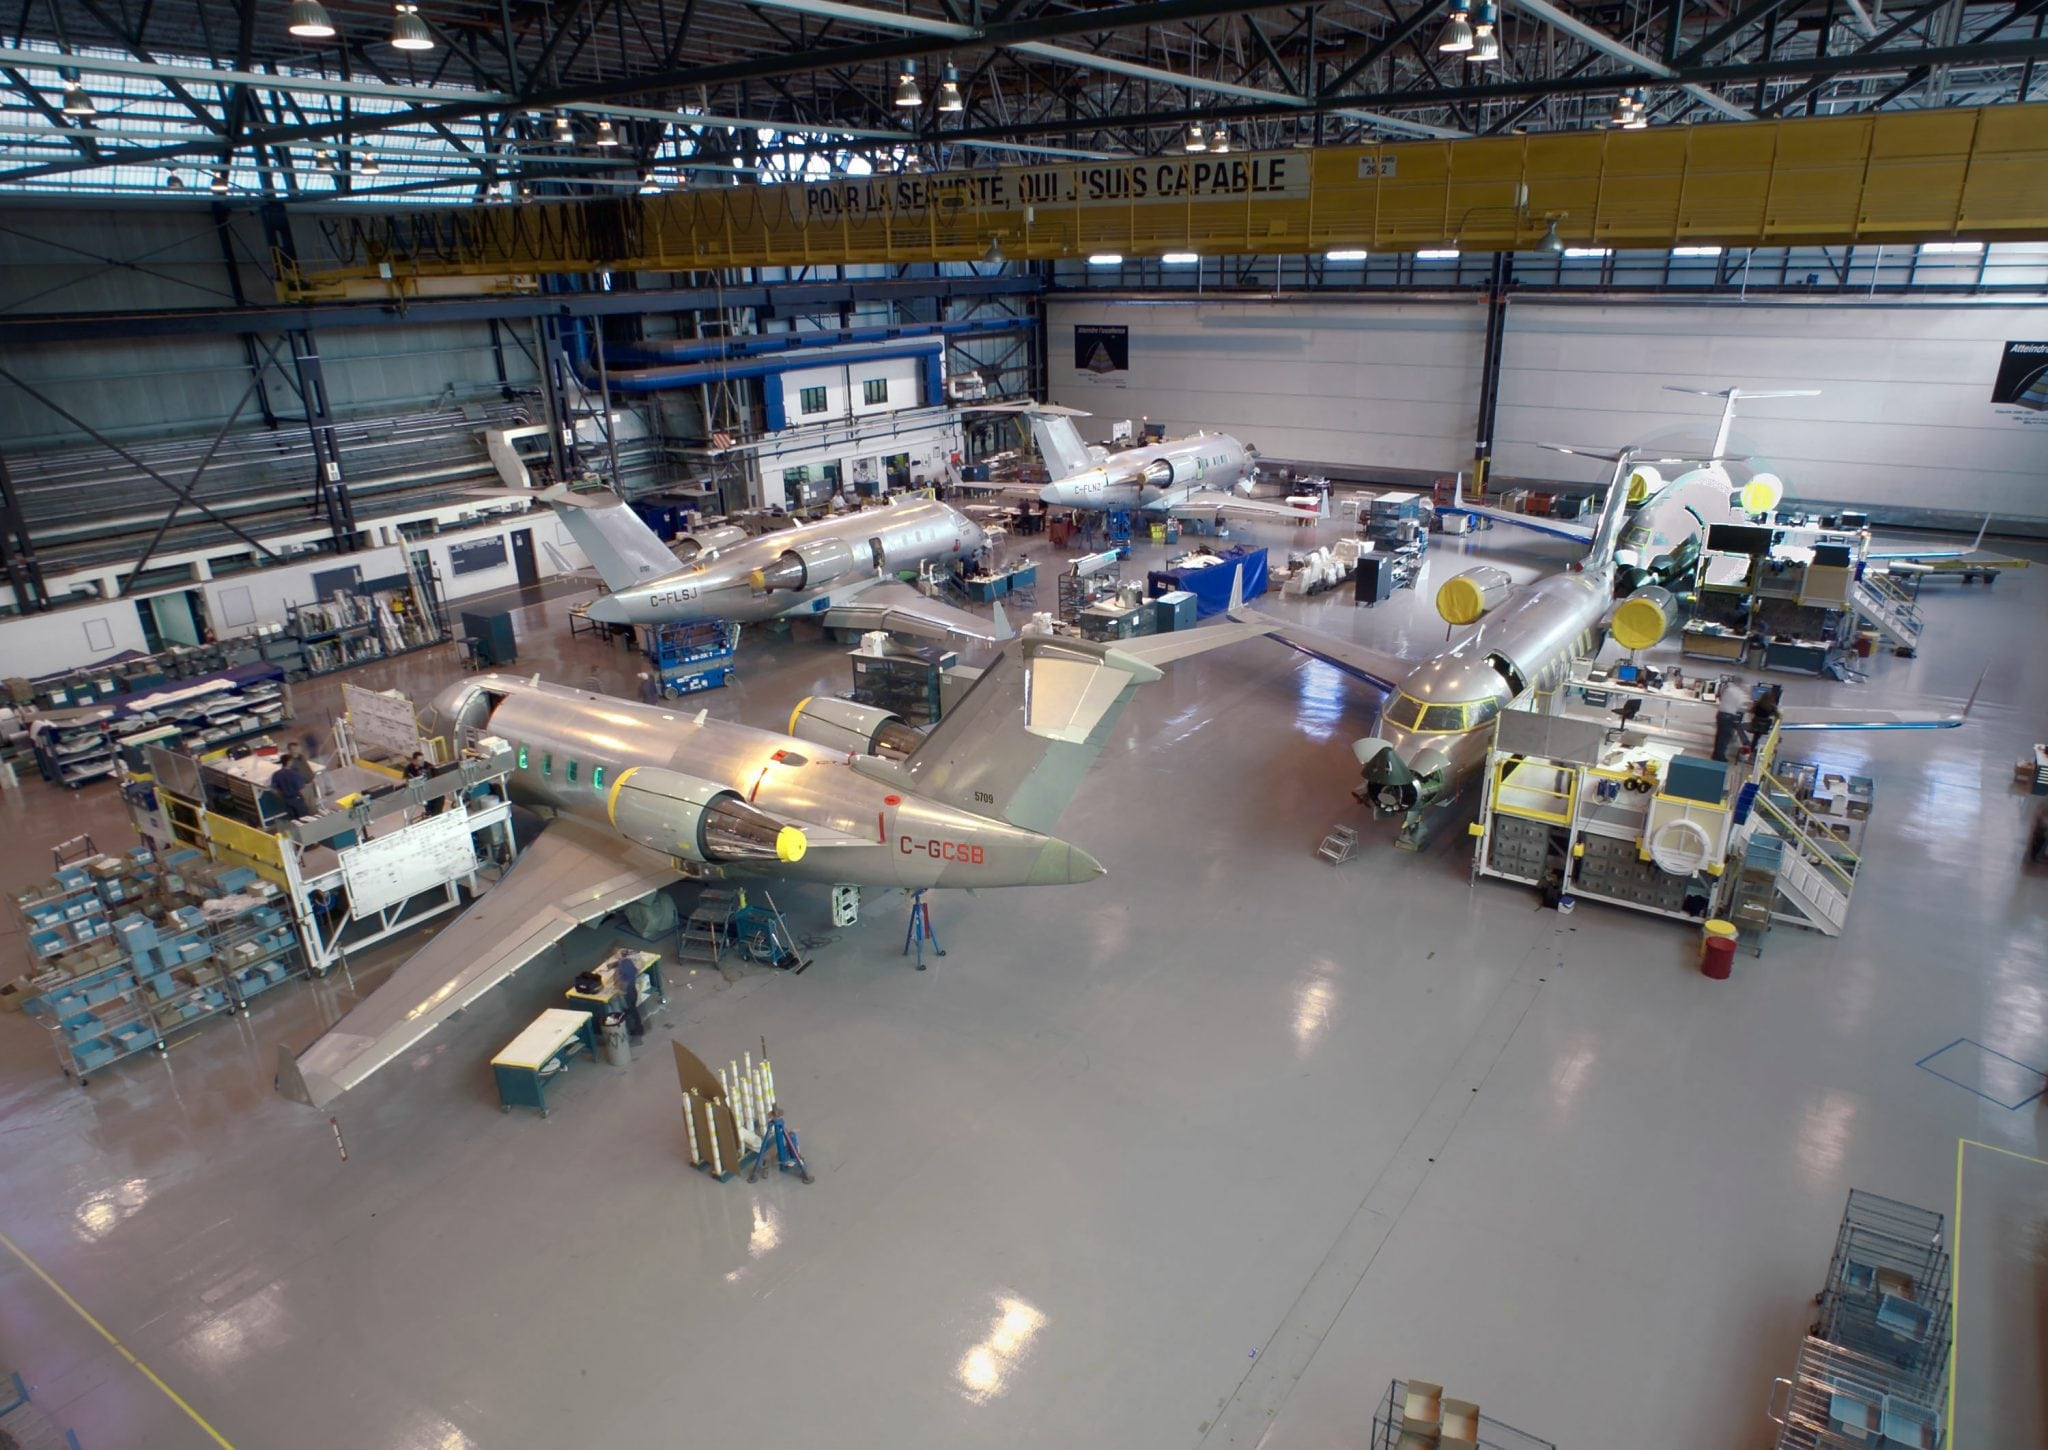 Bombardier Challenger plant, Dorval, Canada. Photo: Bombardier